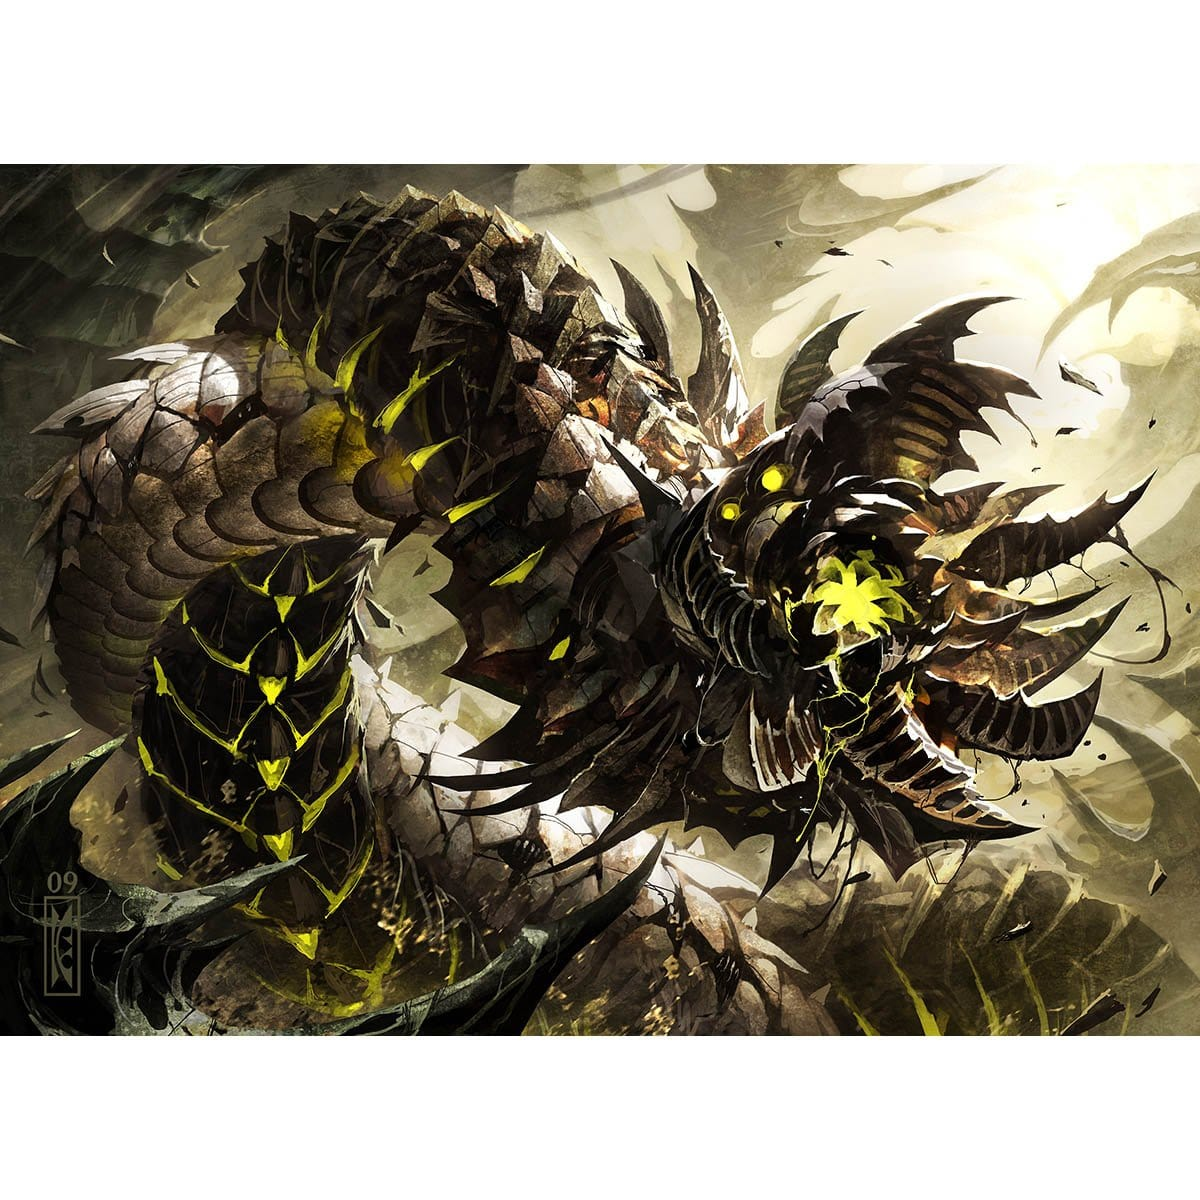 Wurmcoil Engine Print - Print - Original Magic Art - Accessories for Magic the Gathering and other card games